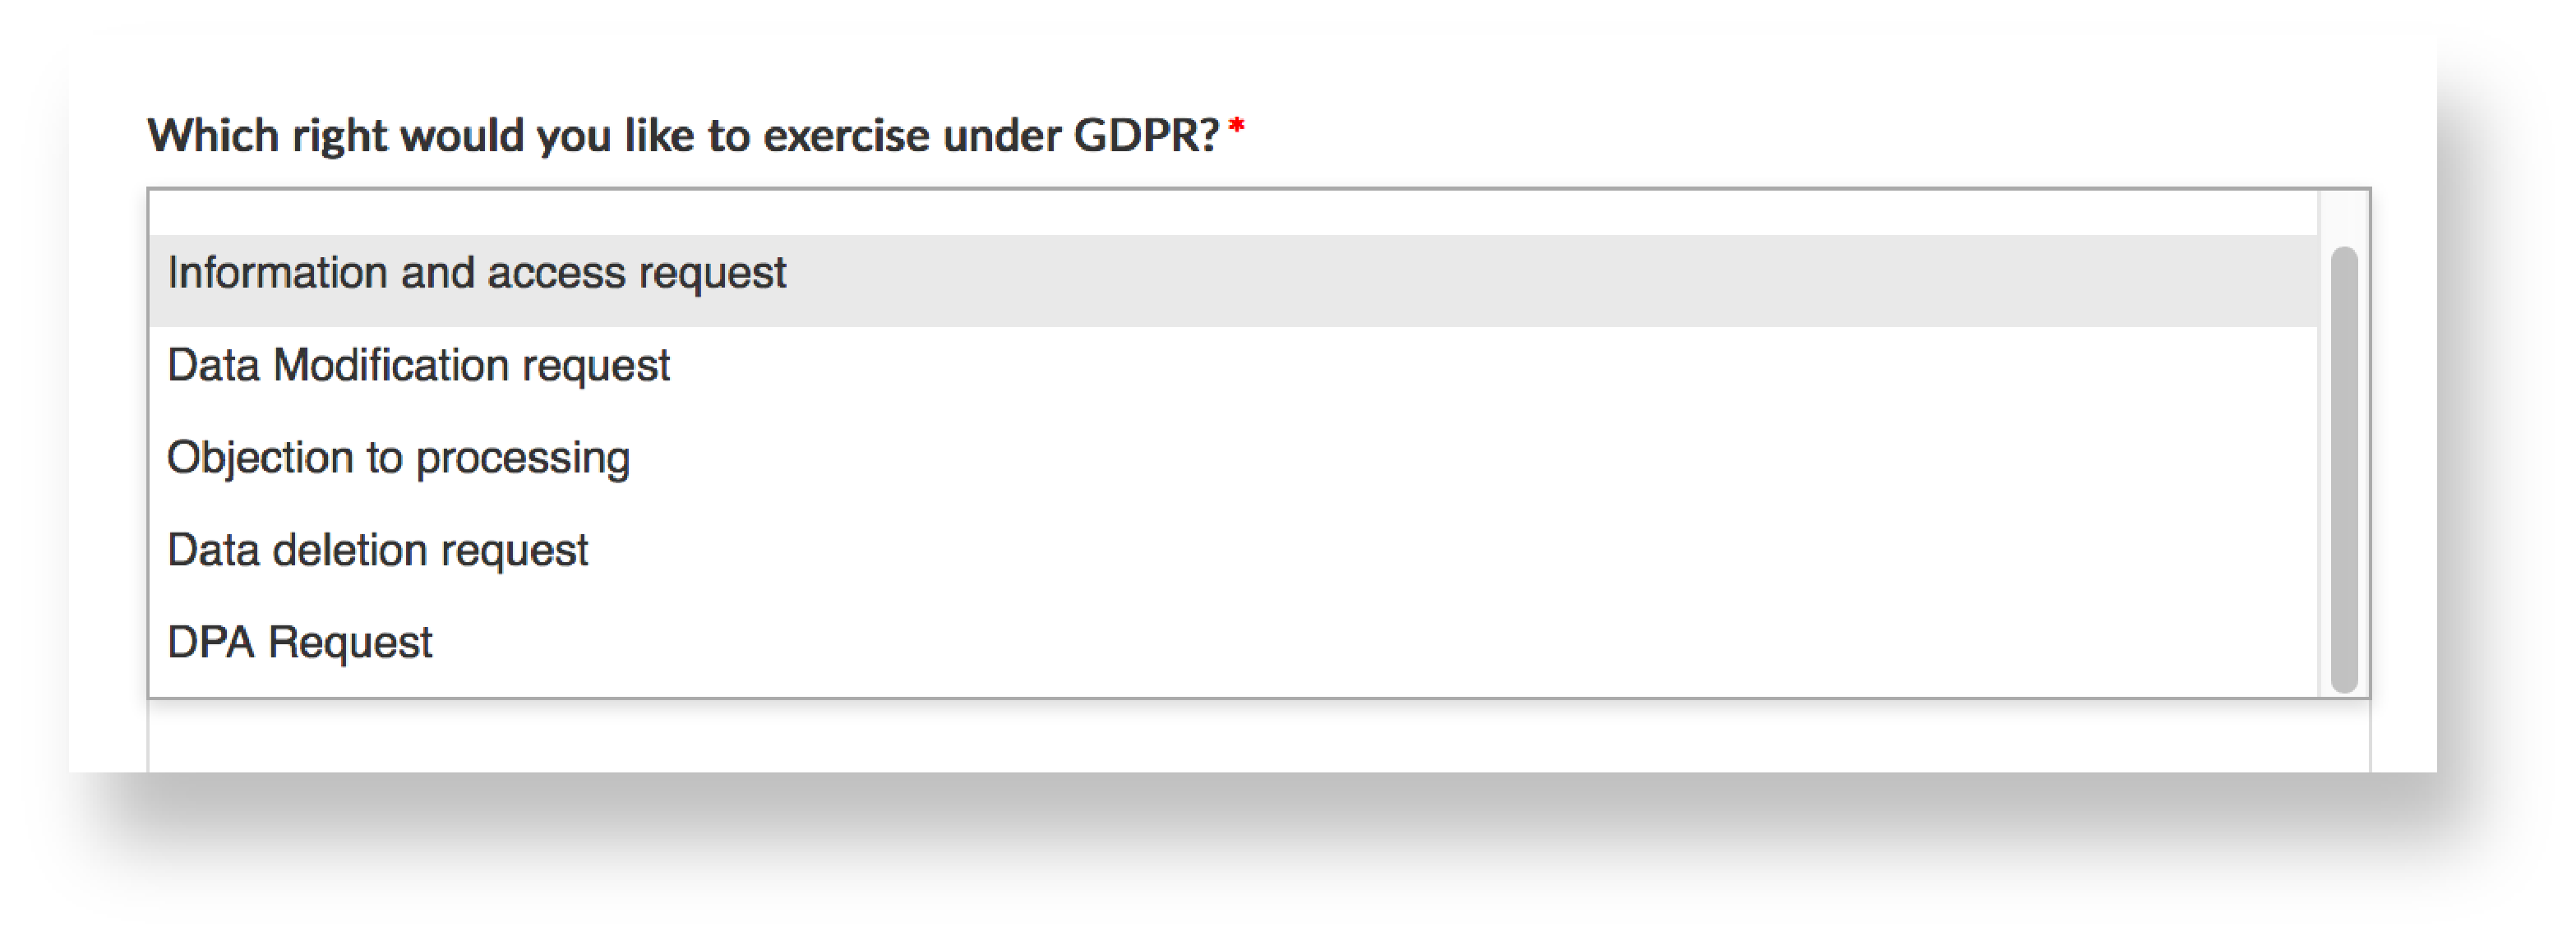 retail_gdpr_types.png